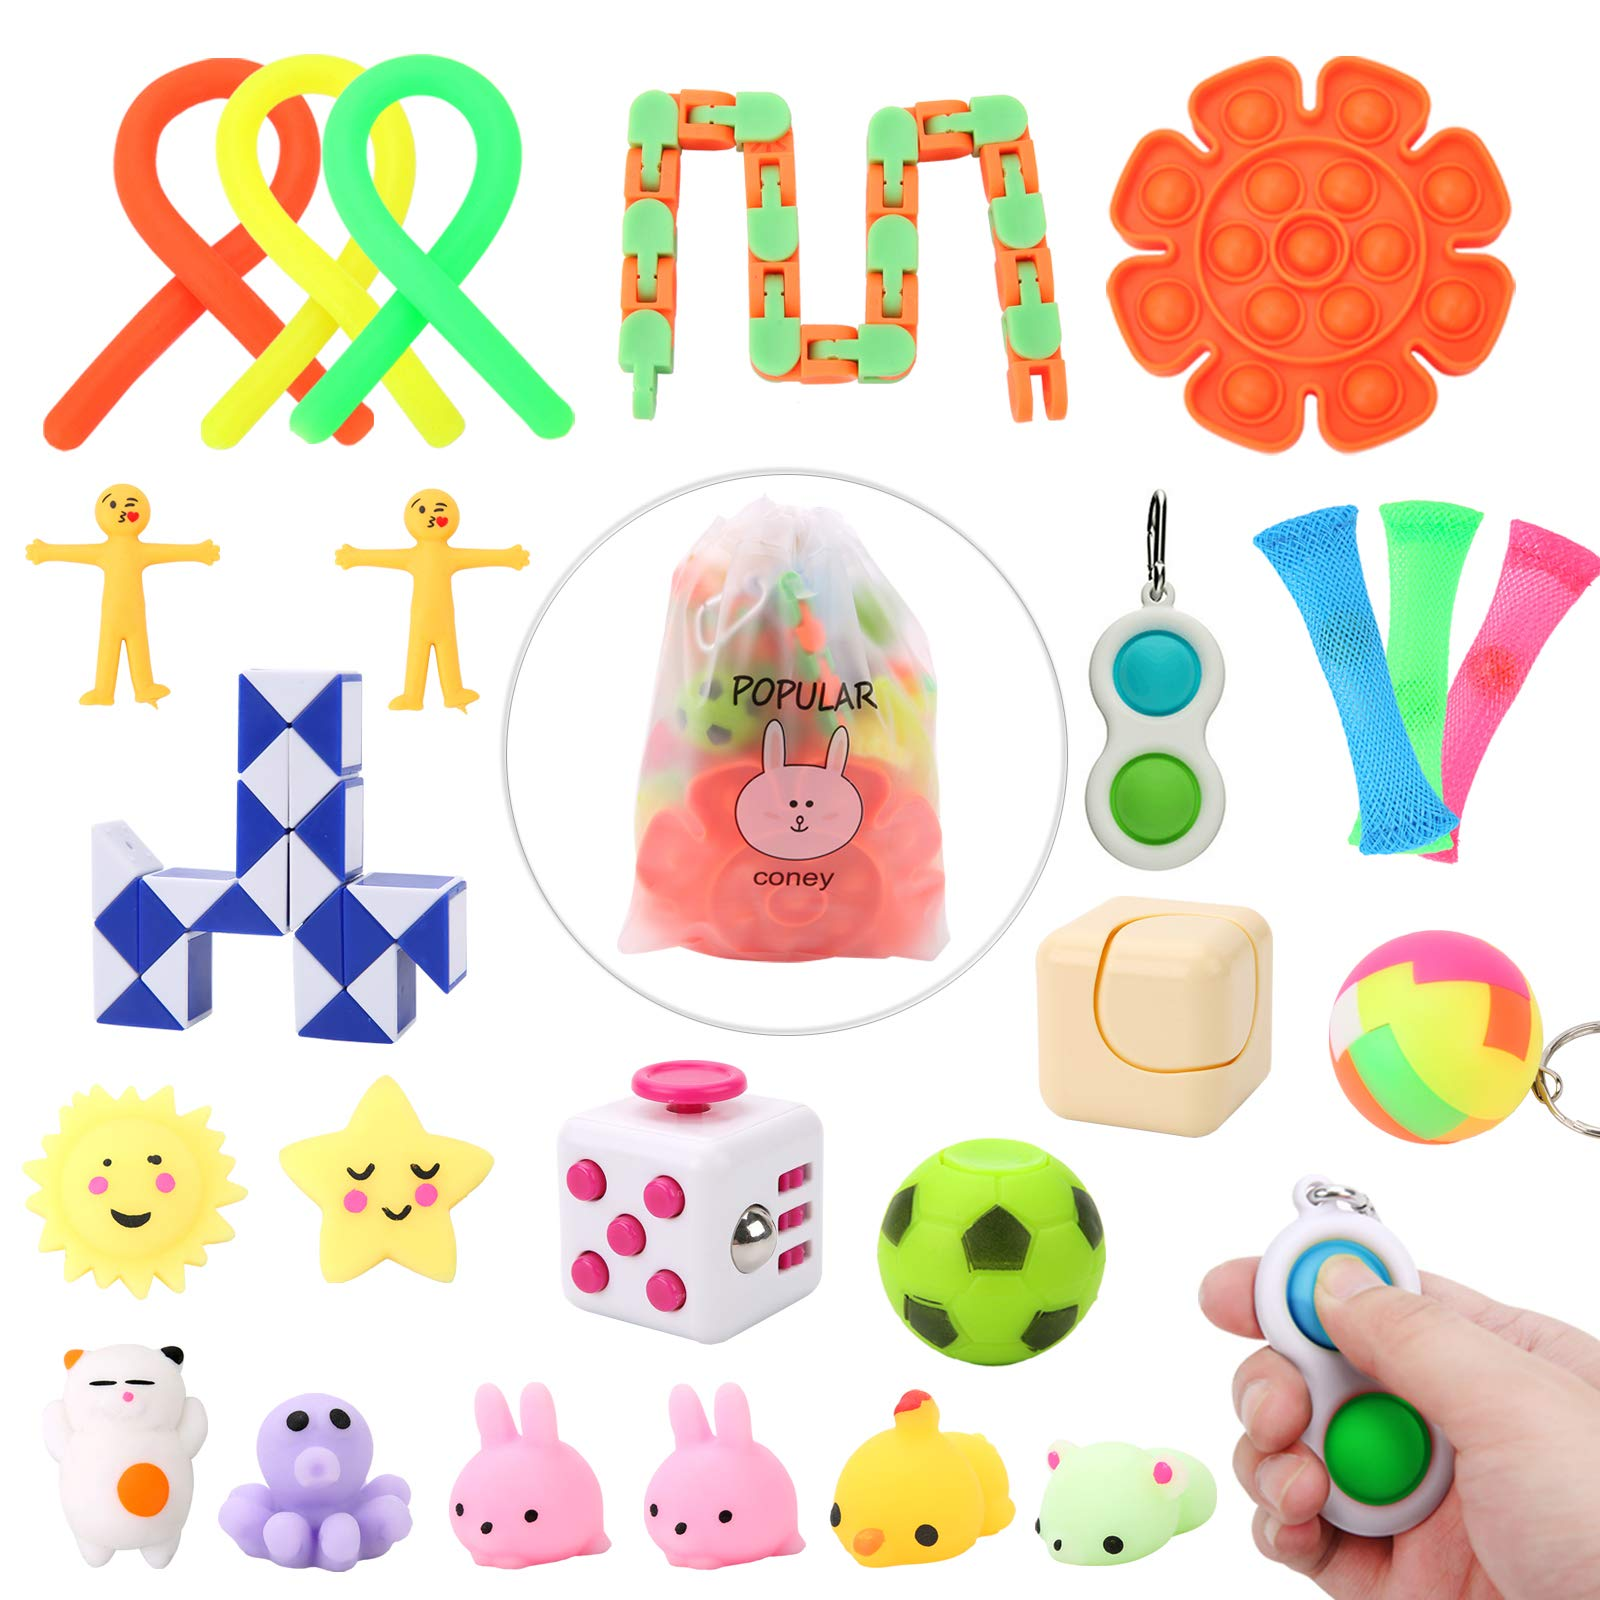 Sensory Fidget Toys Set, Pack of 24pcs Bundle Fidget Toys for Kids Adults Anxiety and Stress Relivers Gift for Easter, Pinata, Christmas Stocking